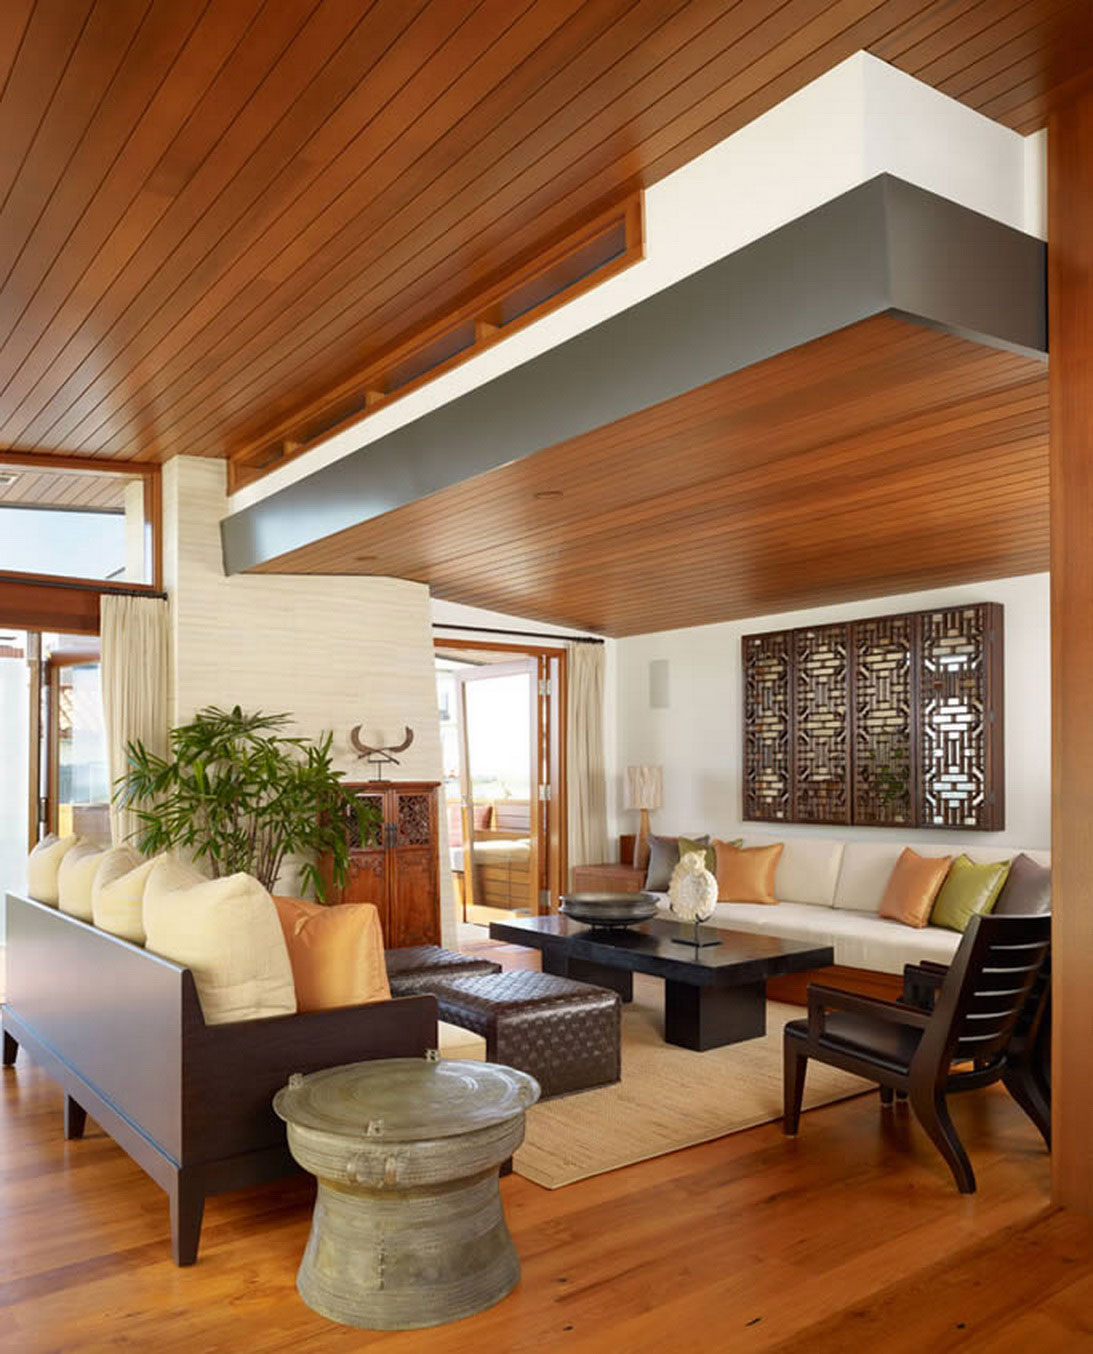 35 Awesome Ceiling Design Ideas - The WoW Style